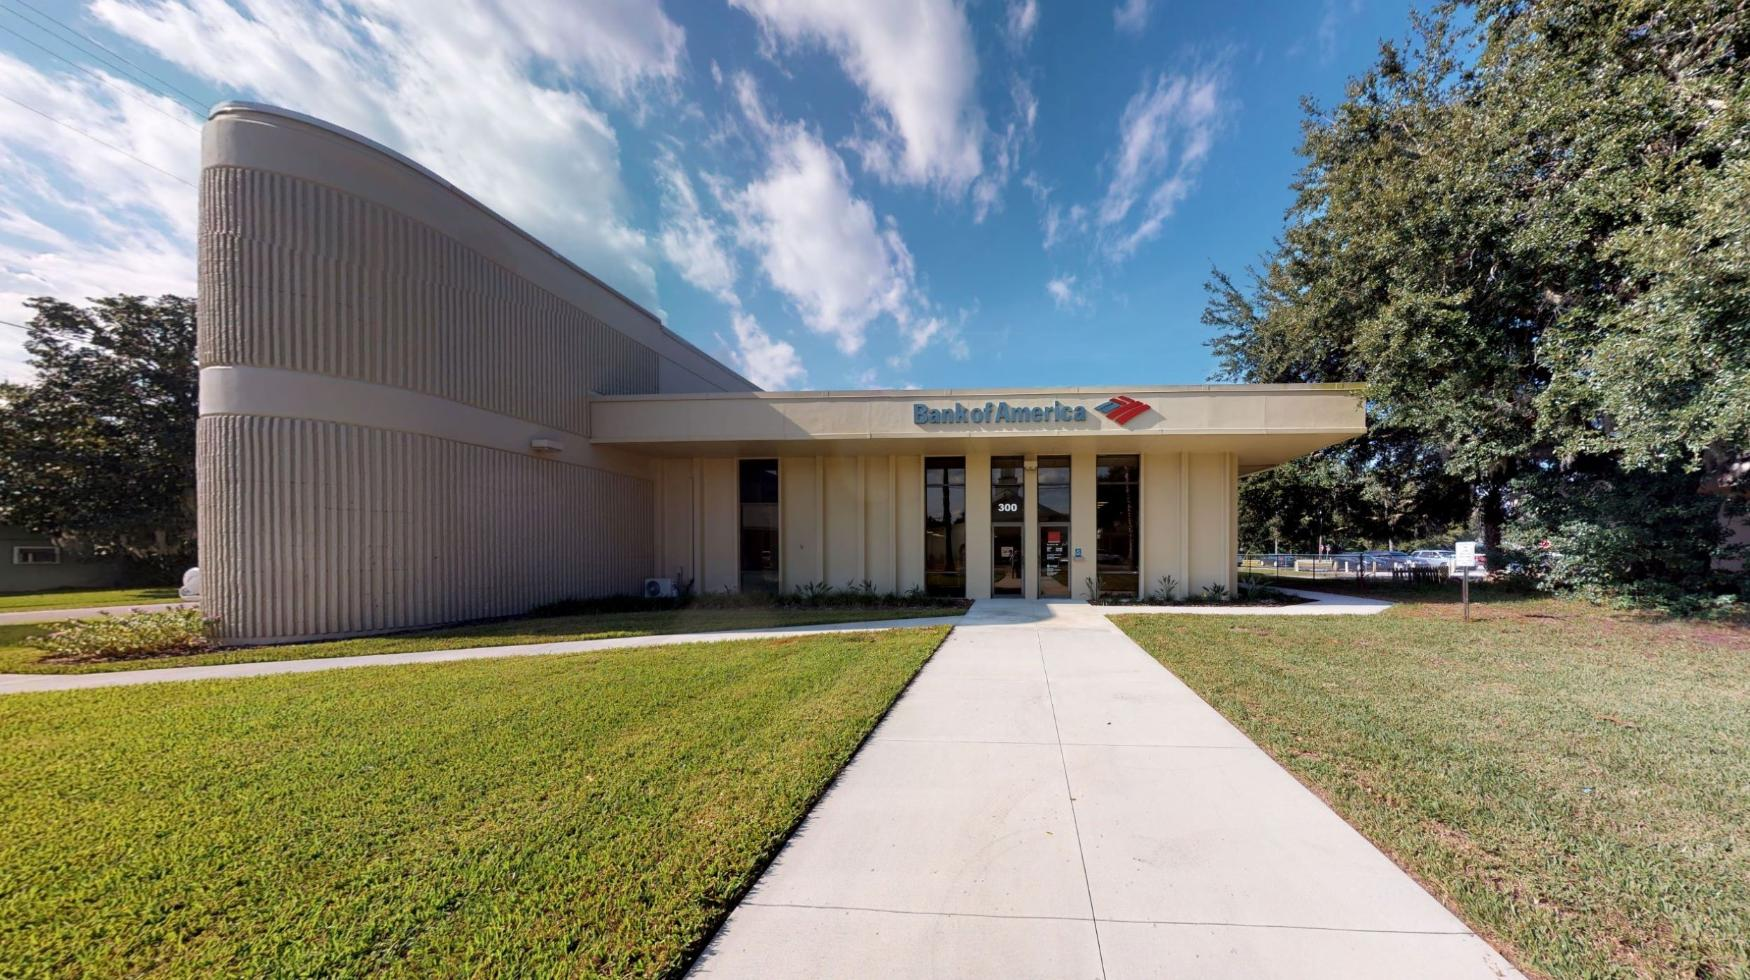 Bank of America financial center with drive-thru ATM | 300 E Moody Blvd, Bunnell, FL 32110